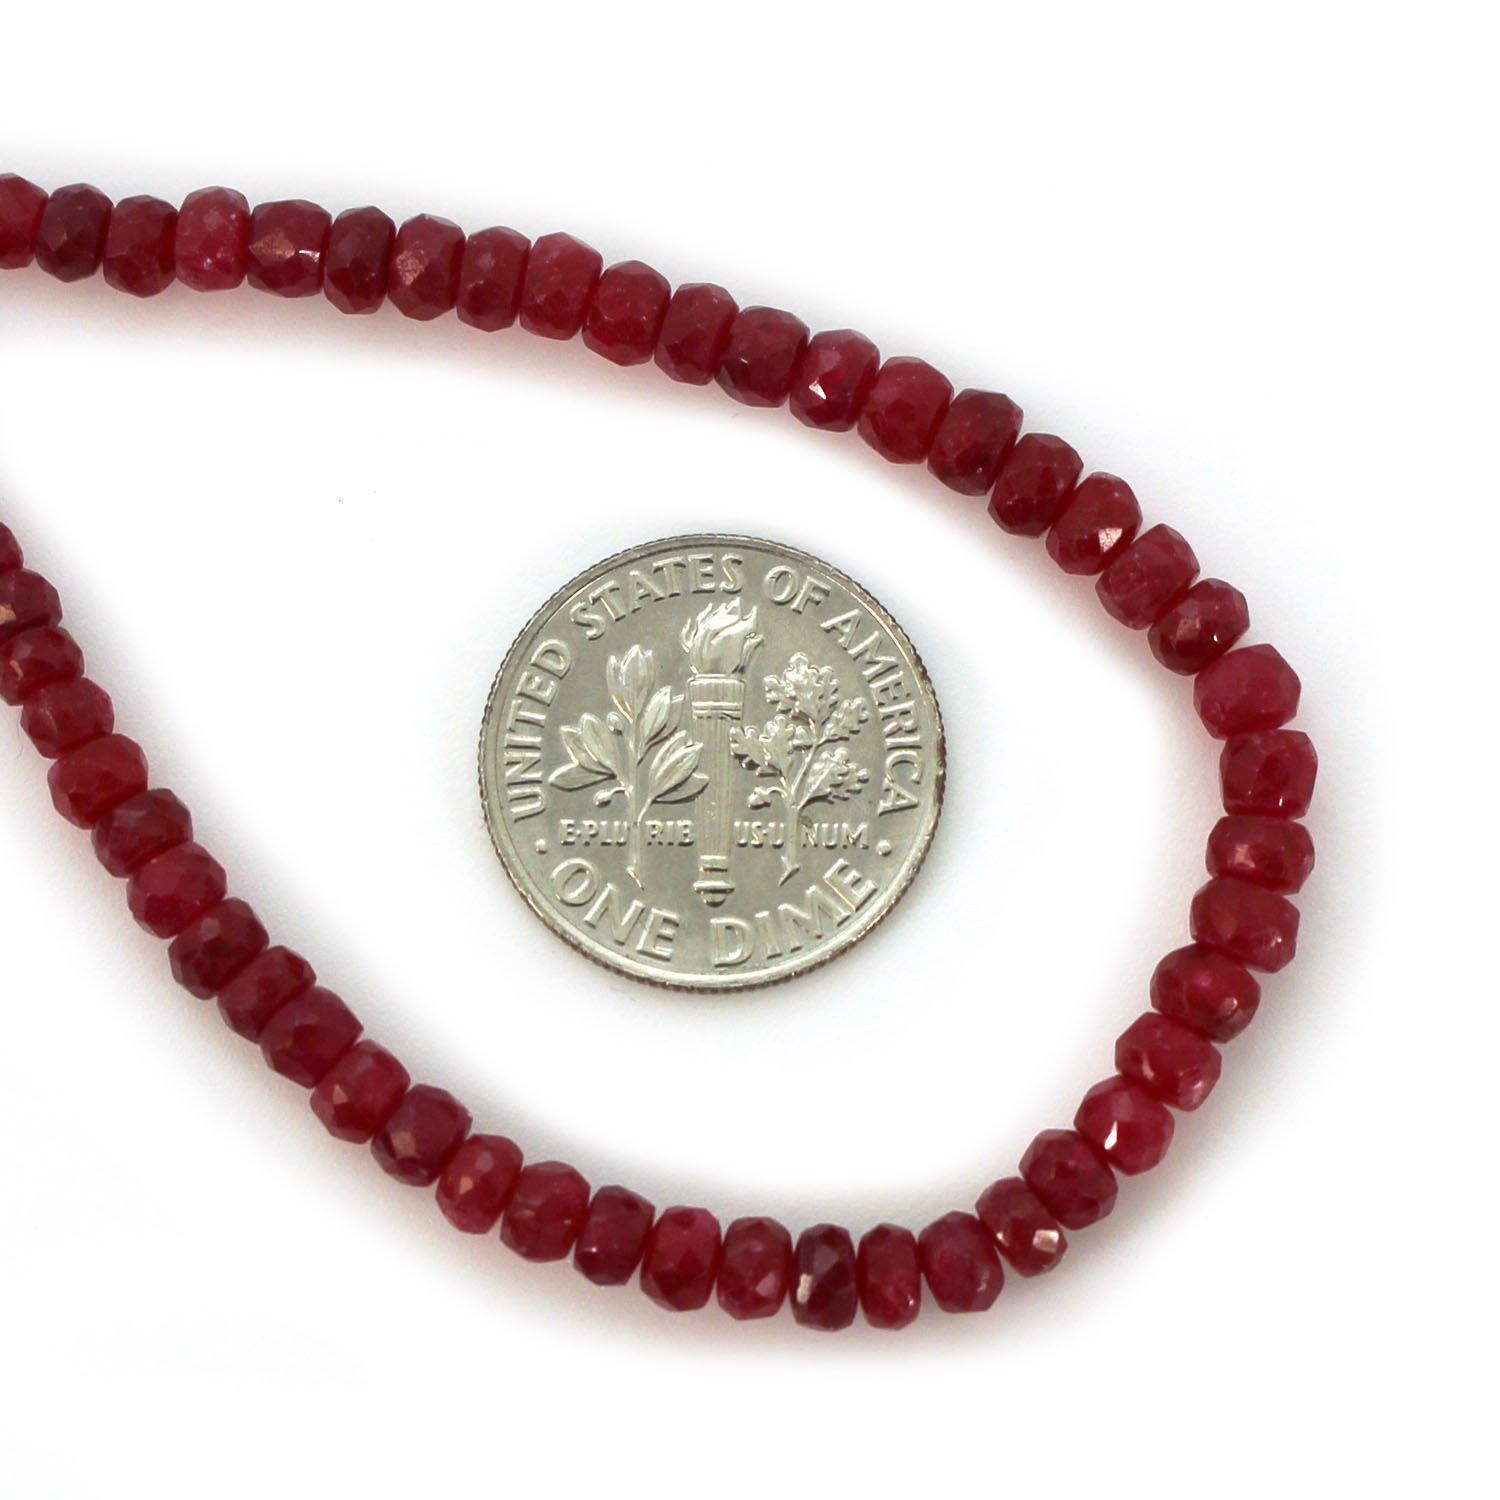 Gemstone beads - Ruby Faceted Rondelle - 3.5-4mm - 14 inches full strand